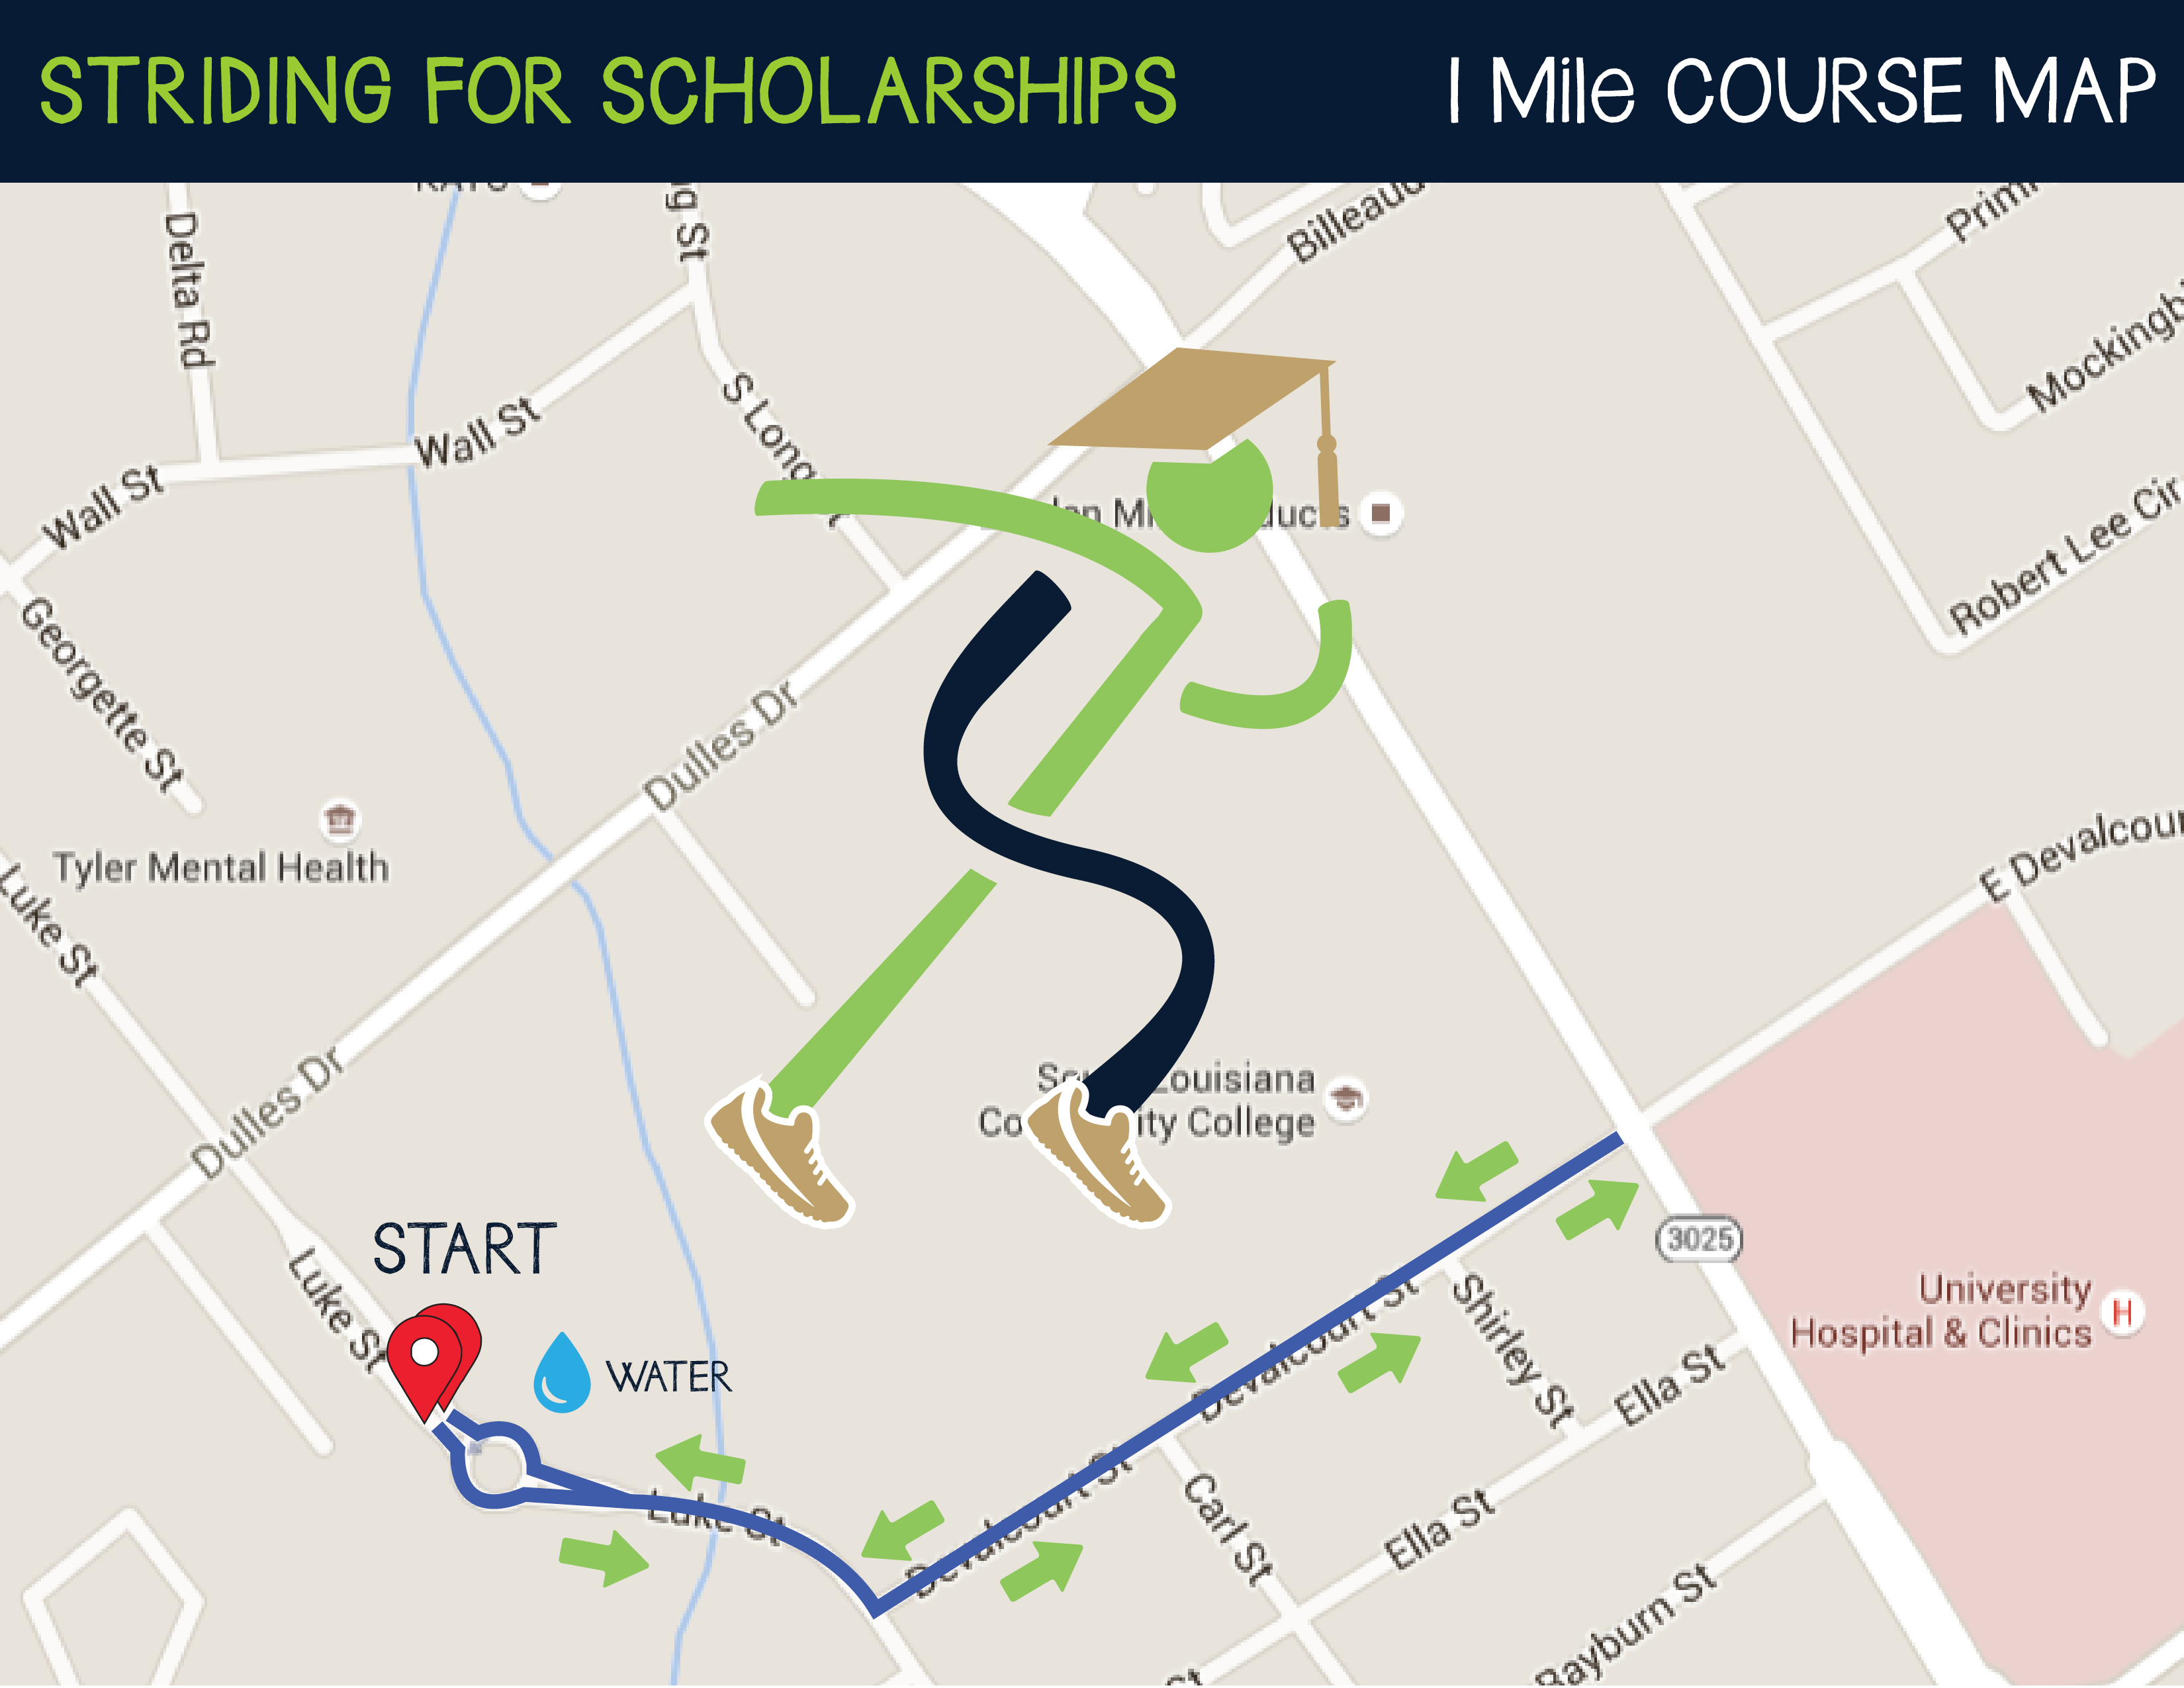 University Of Louisiana At Lafayette Campus Map.Striding For Scholarships 5k Slcc Foundation